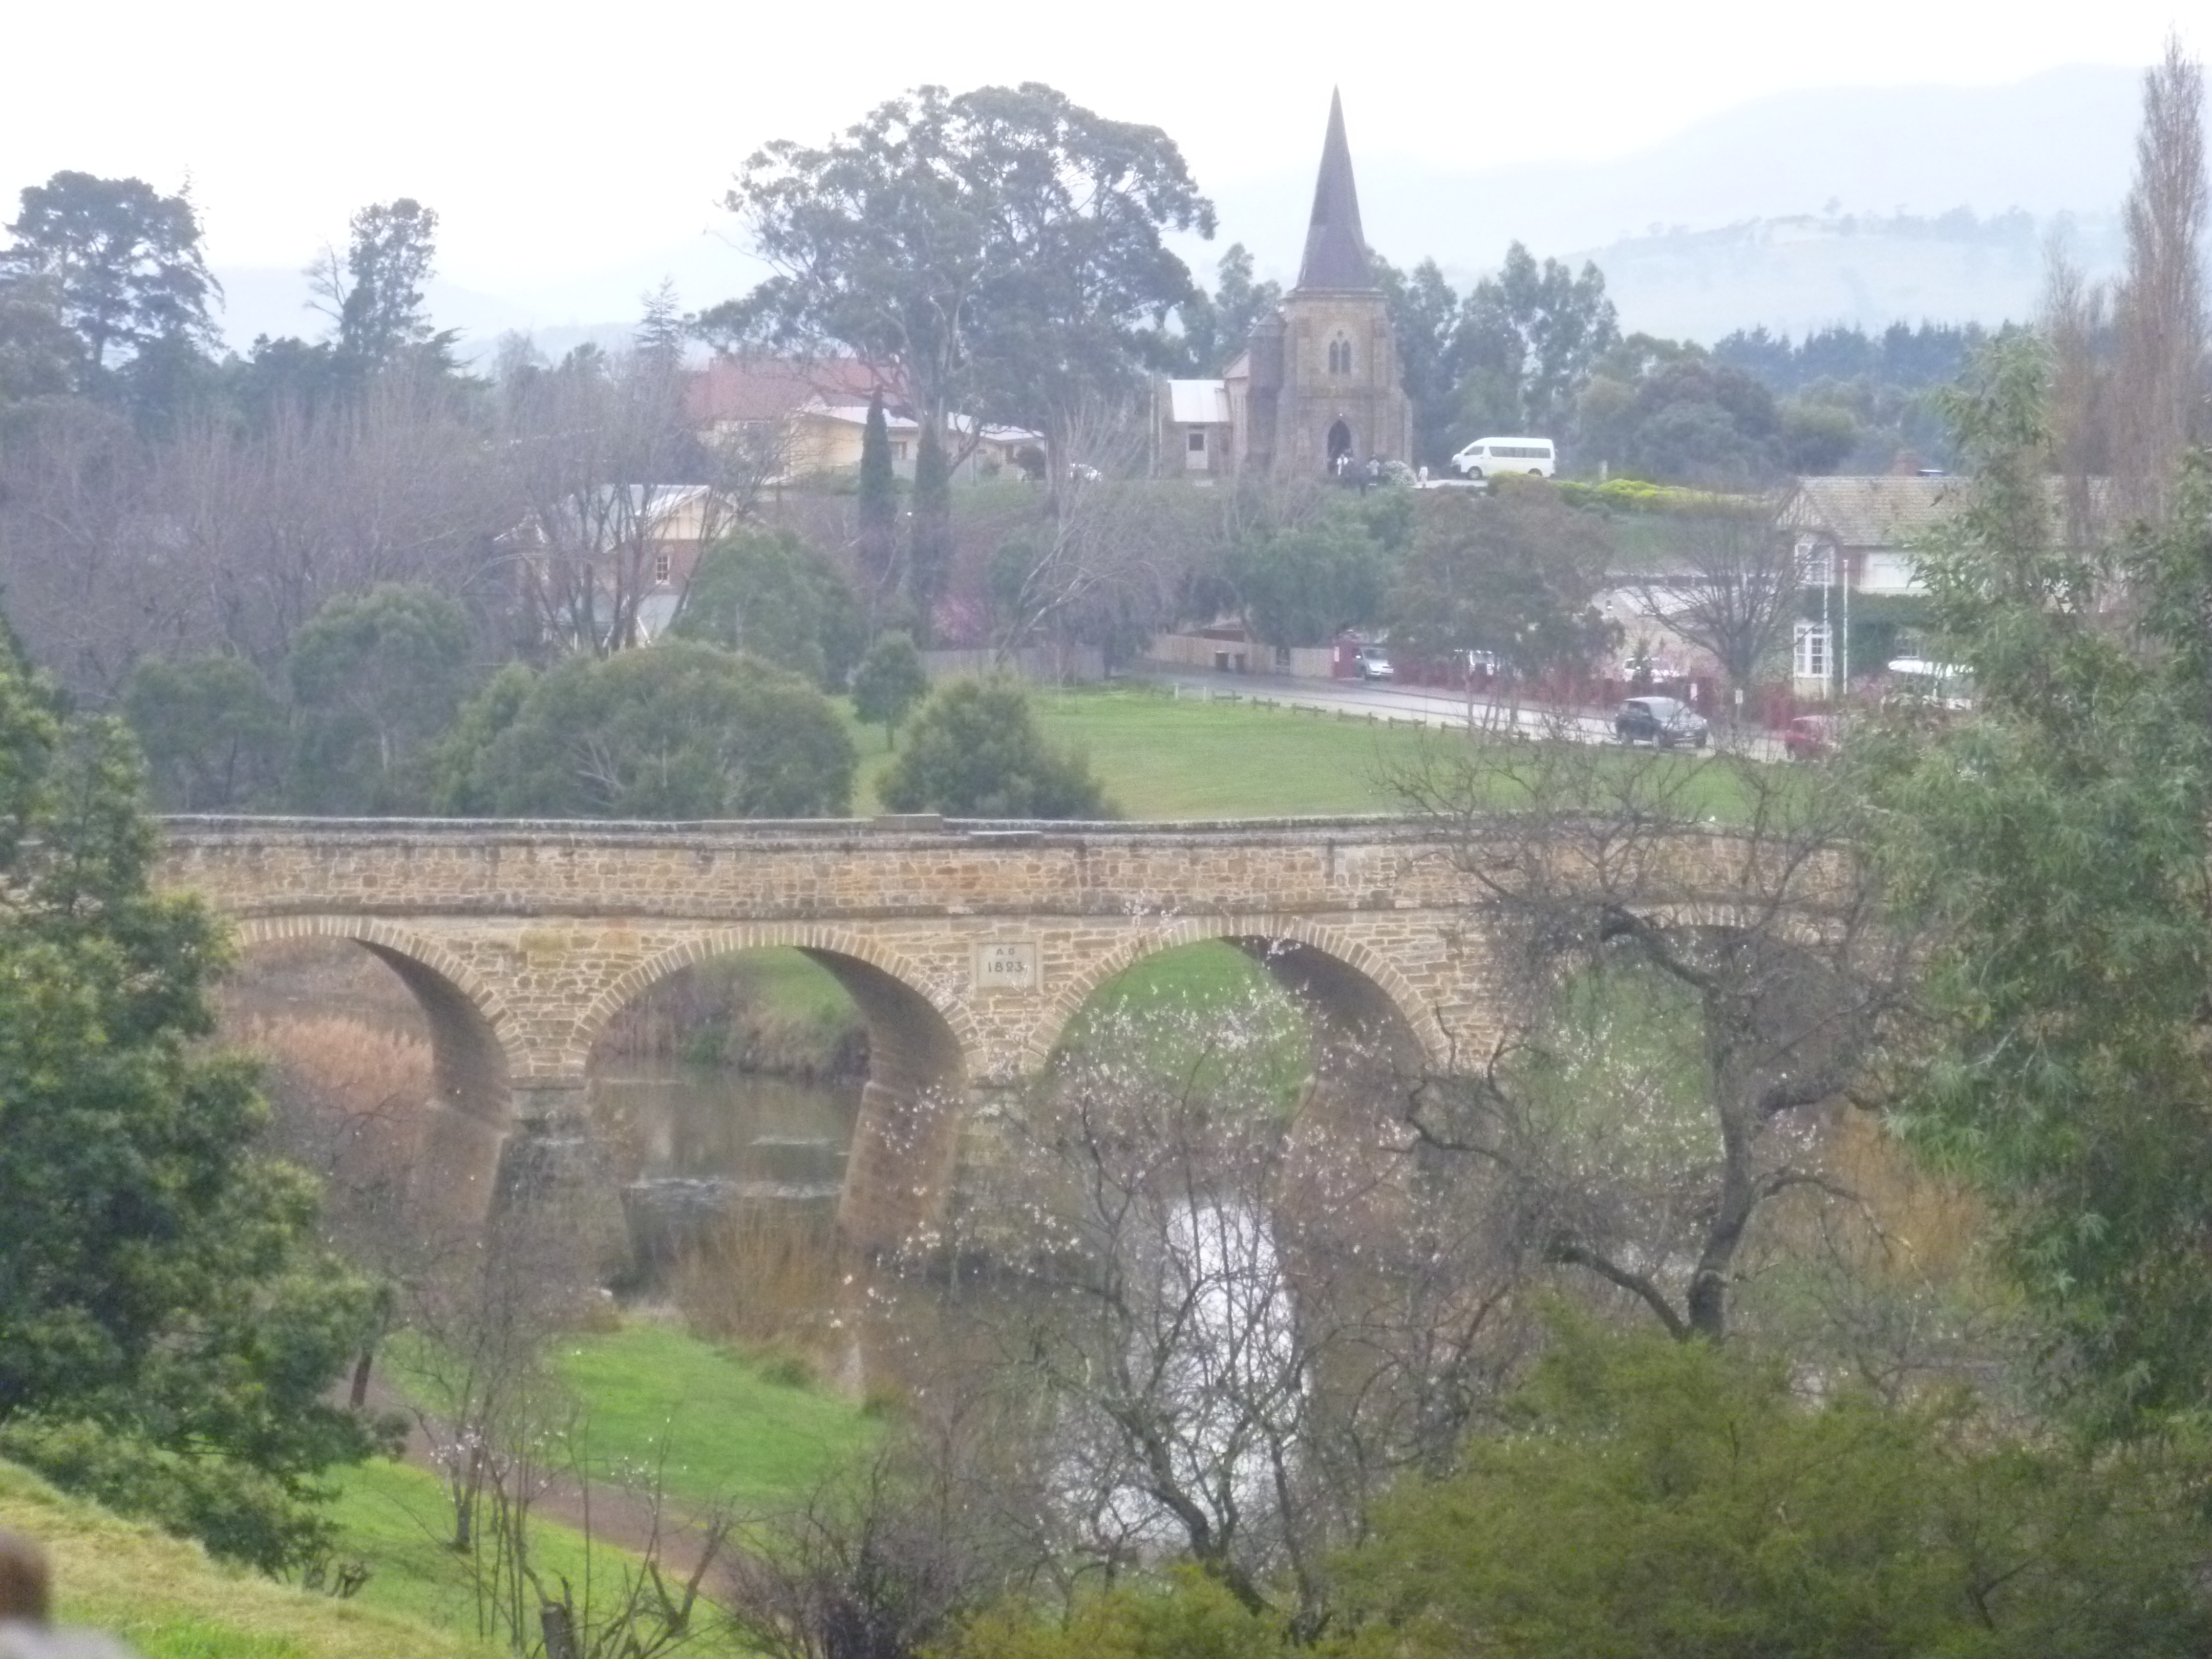 broad river tasmania how to get there